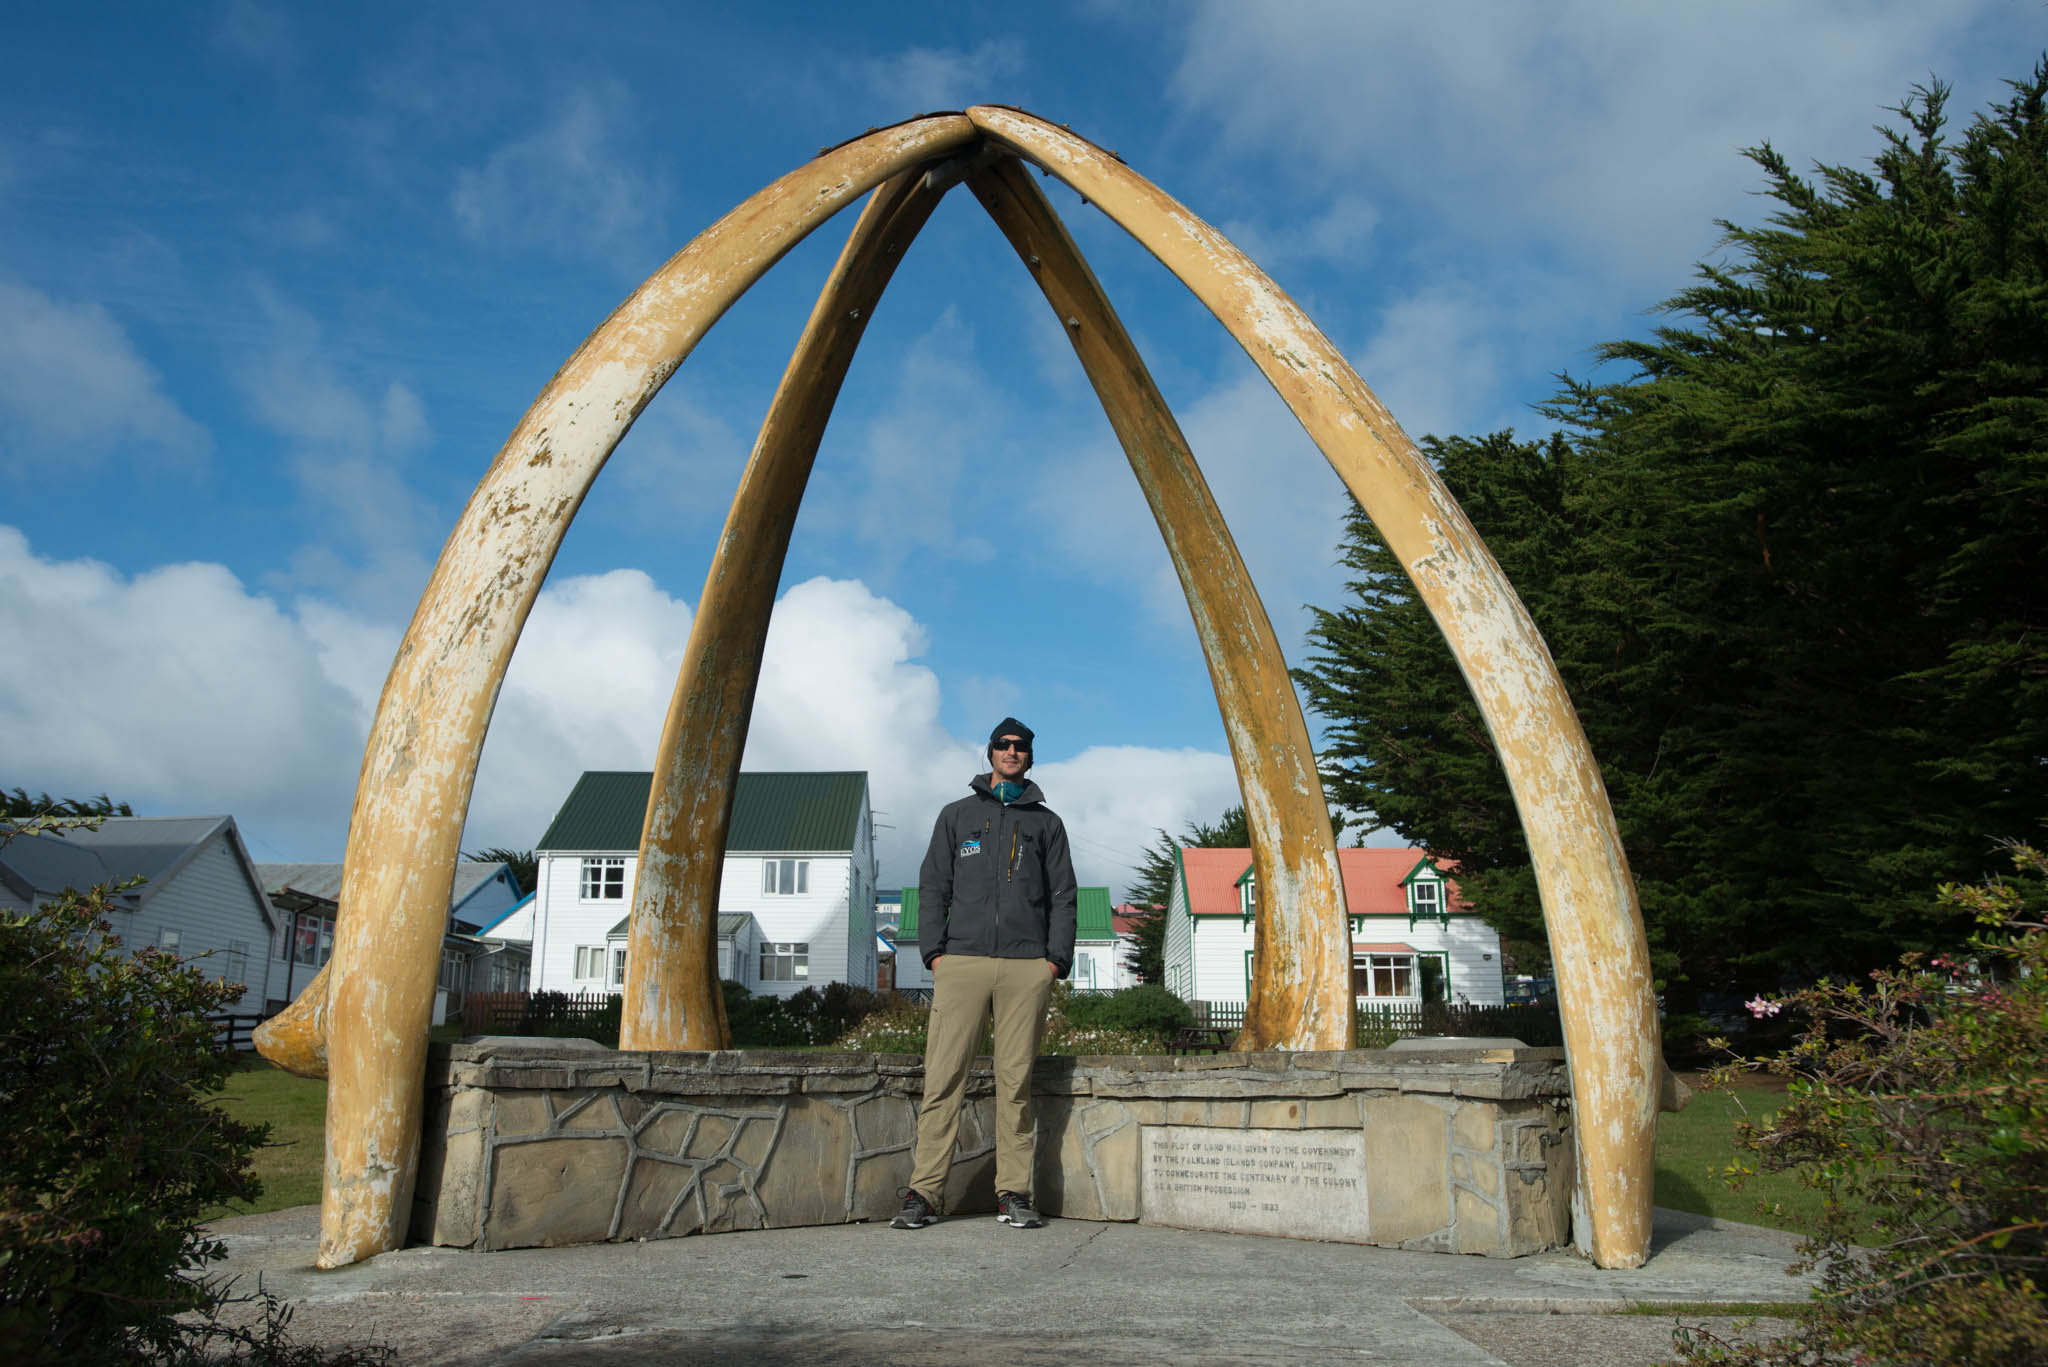 Justin at the Whale Bone Arch